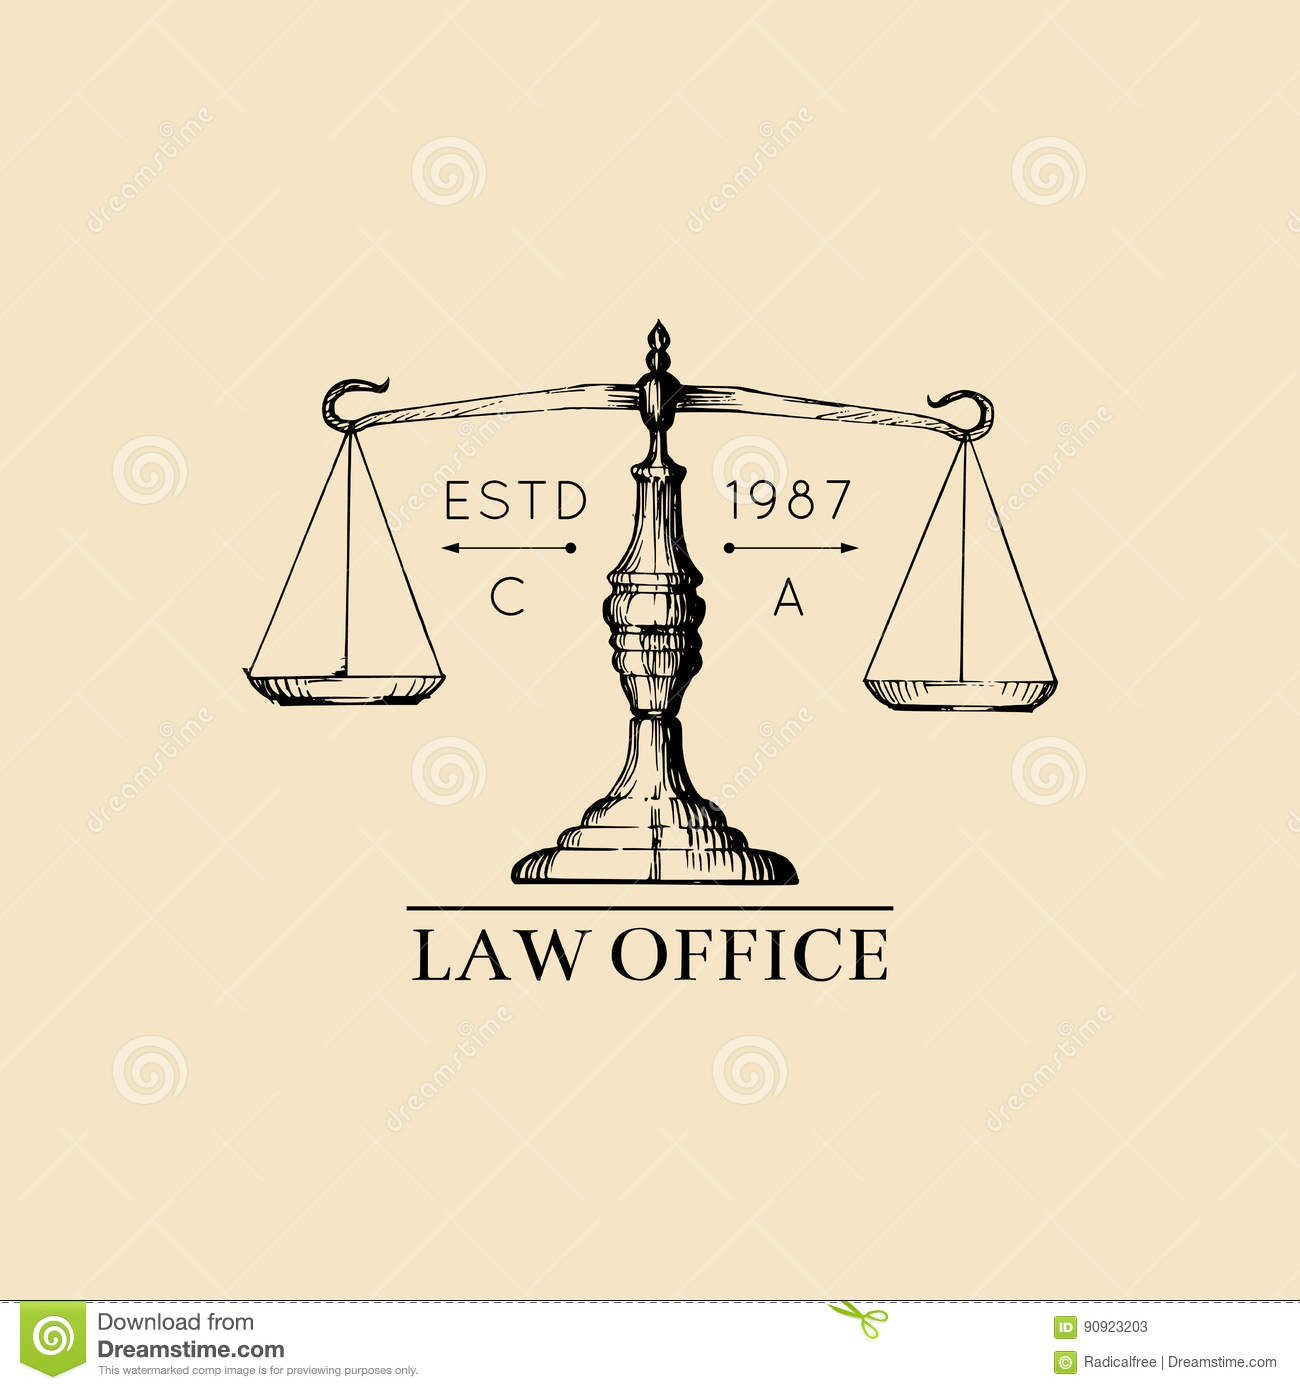 Flat Design Of Empty Law Scale Stock Vector Art & More Images of ...